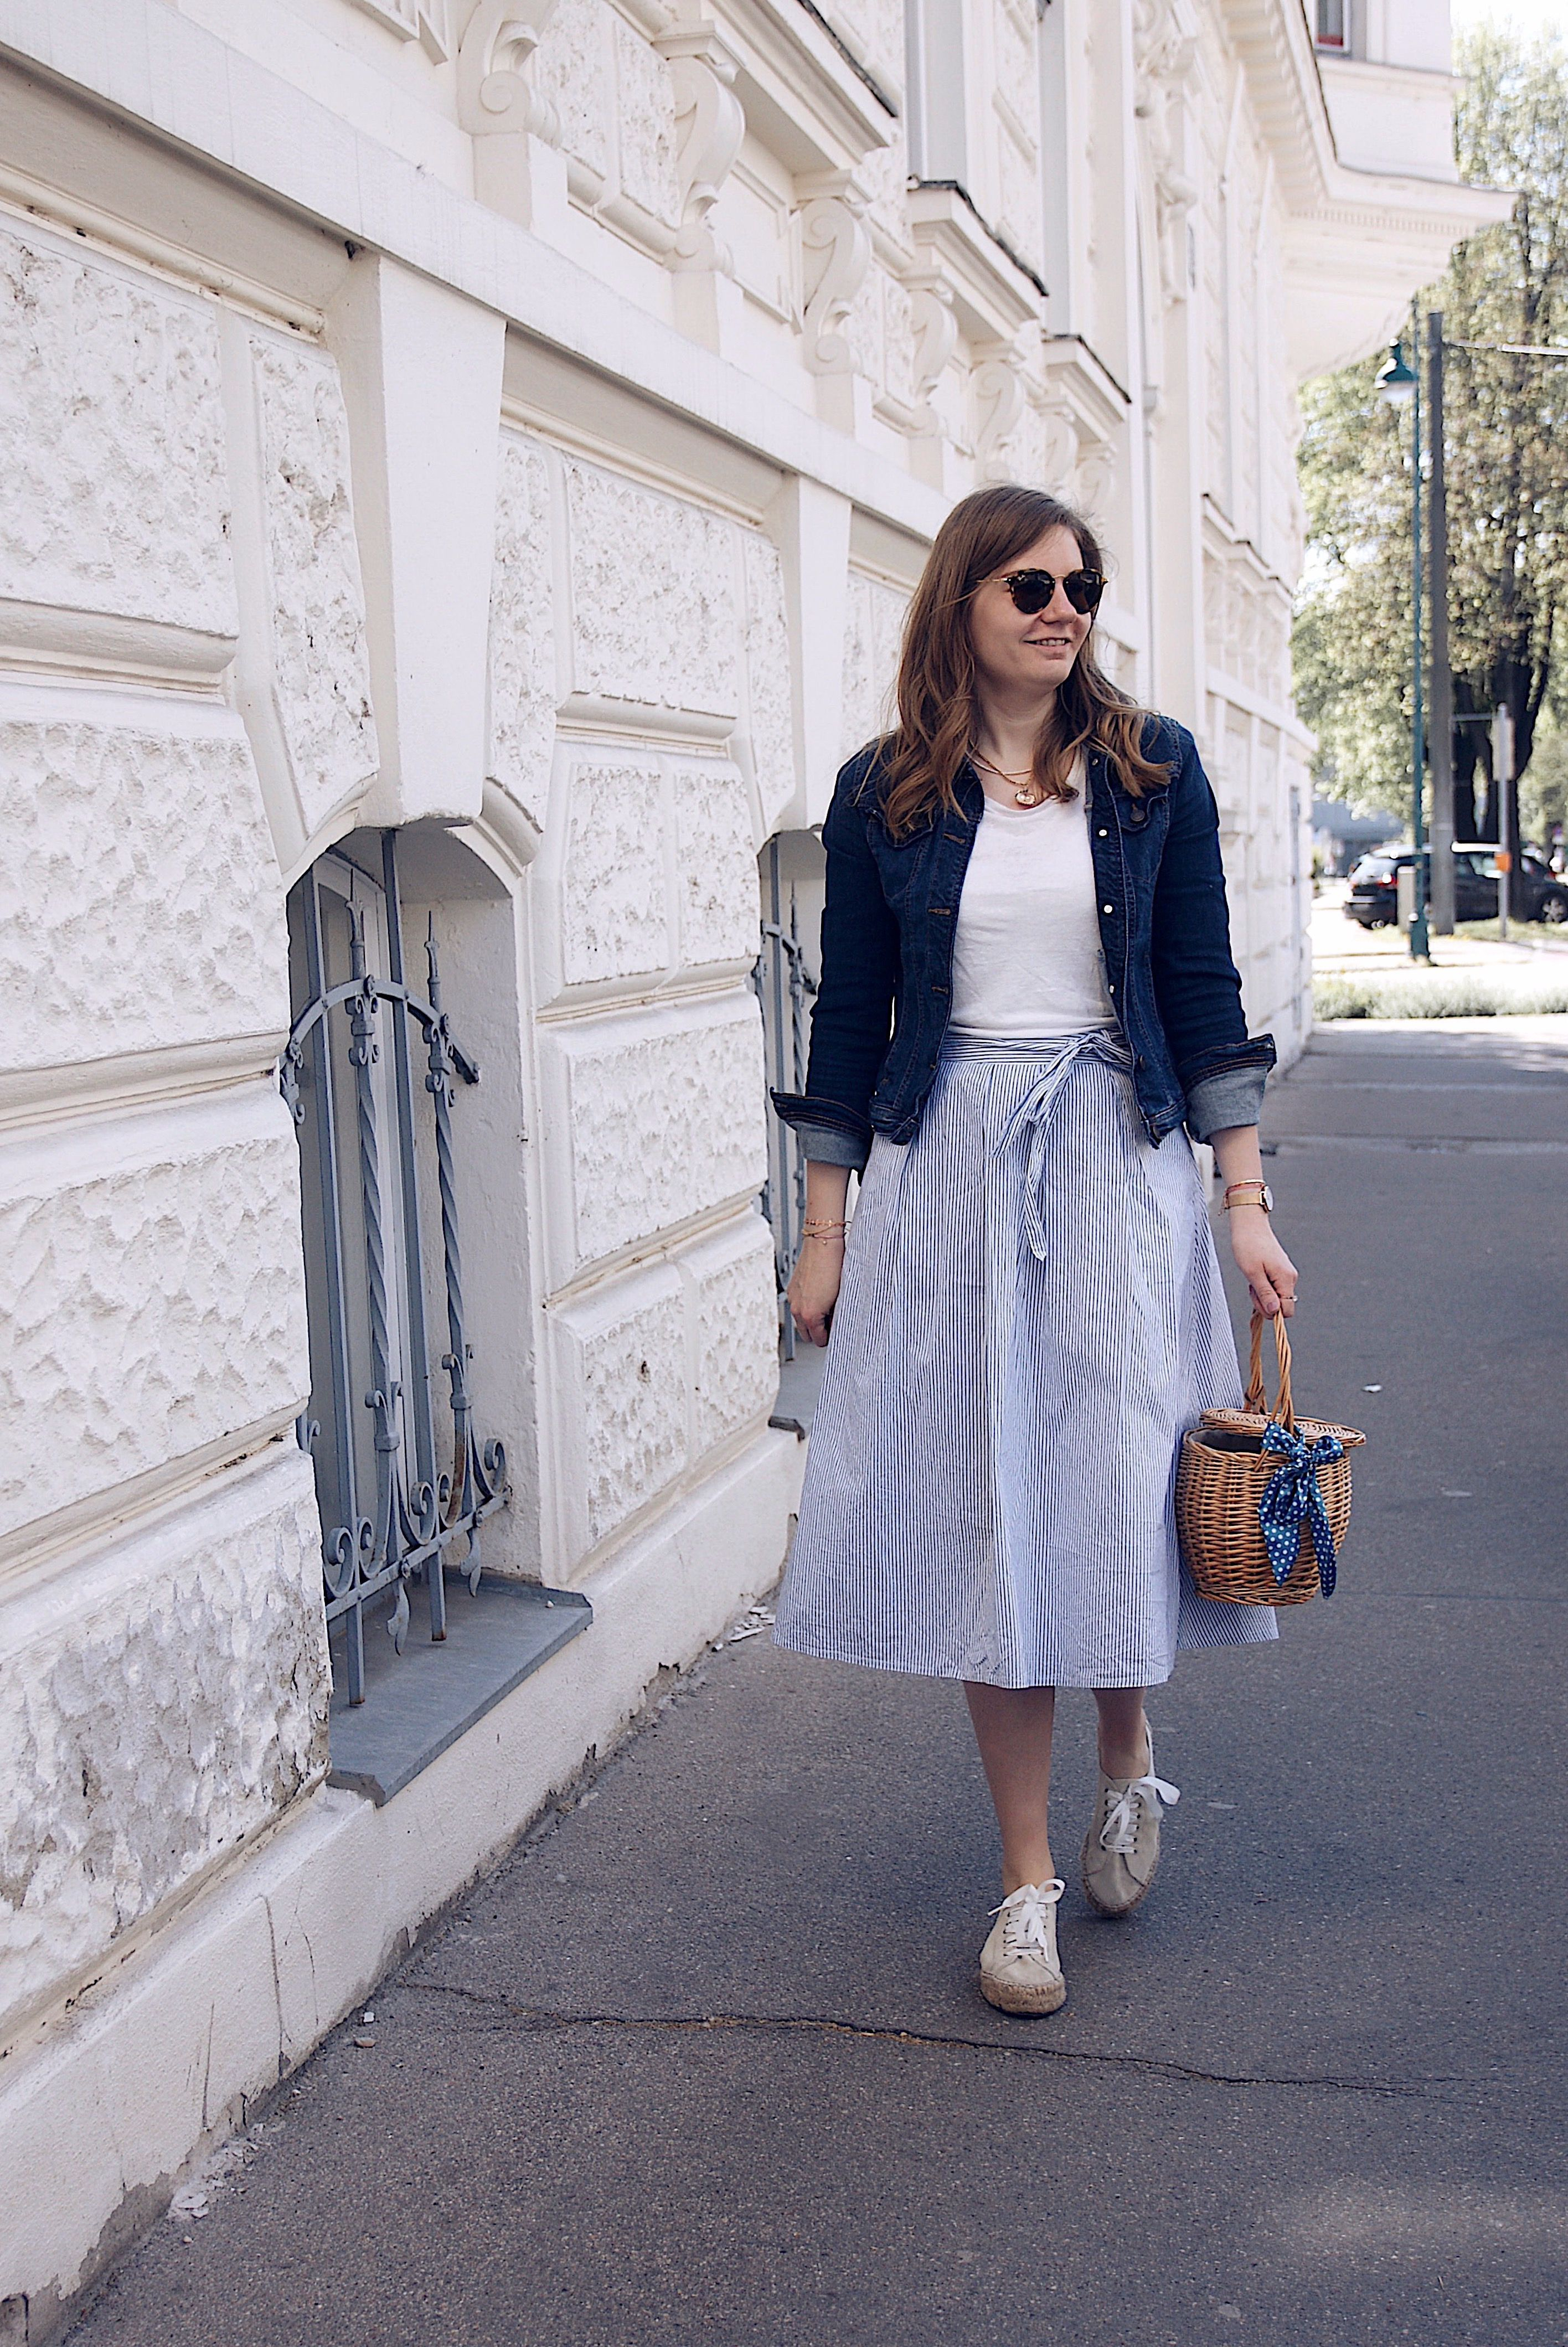 Outfit | Outfit, Blaue jeansjacke, Modetrends